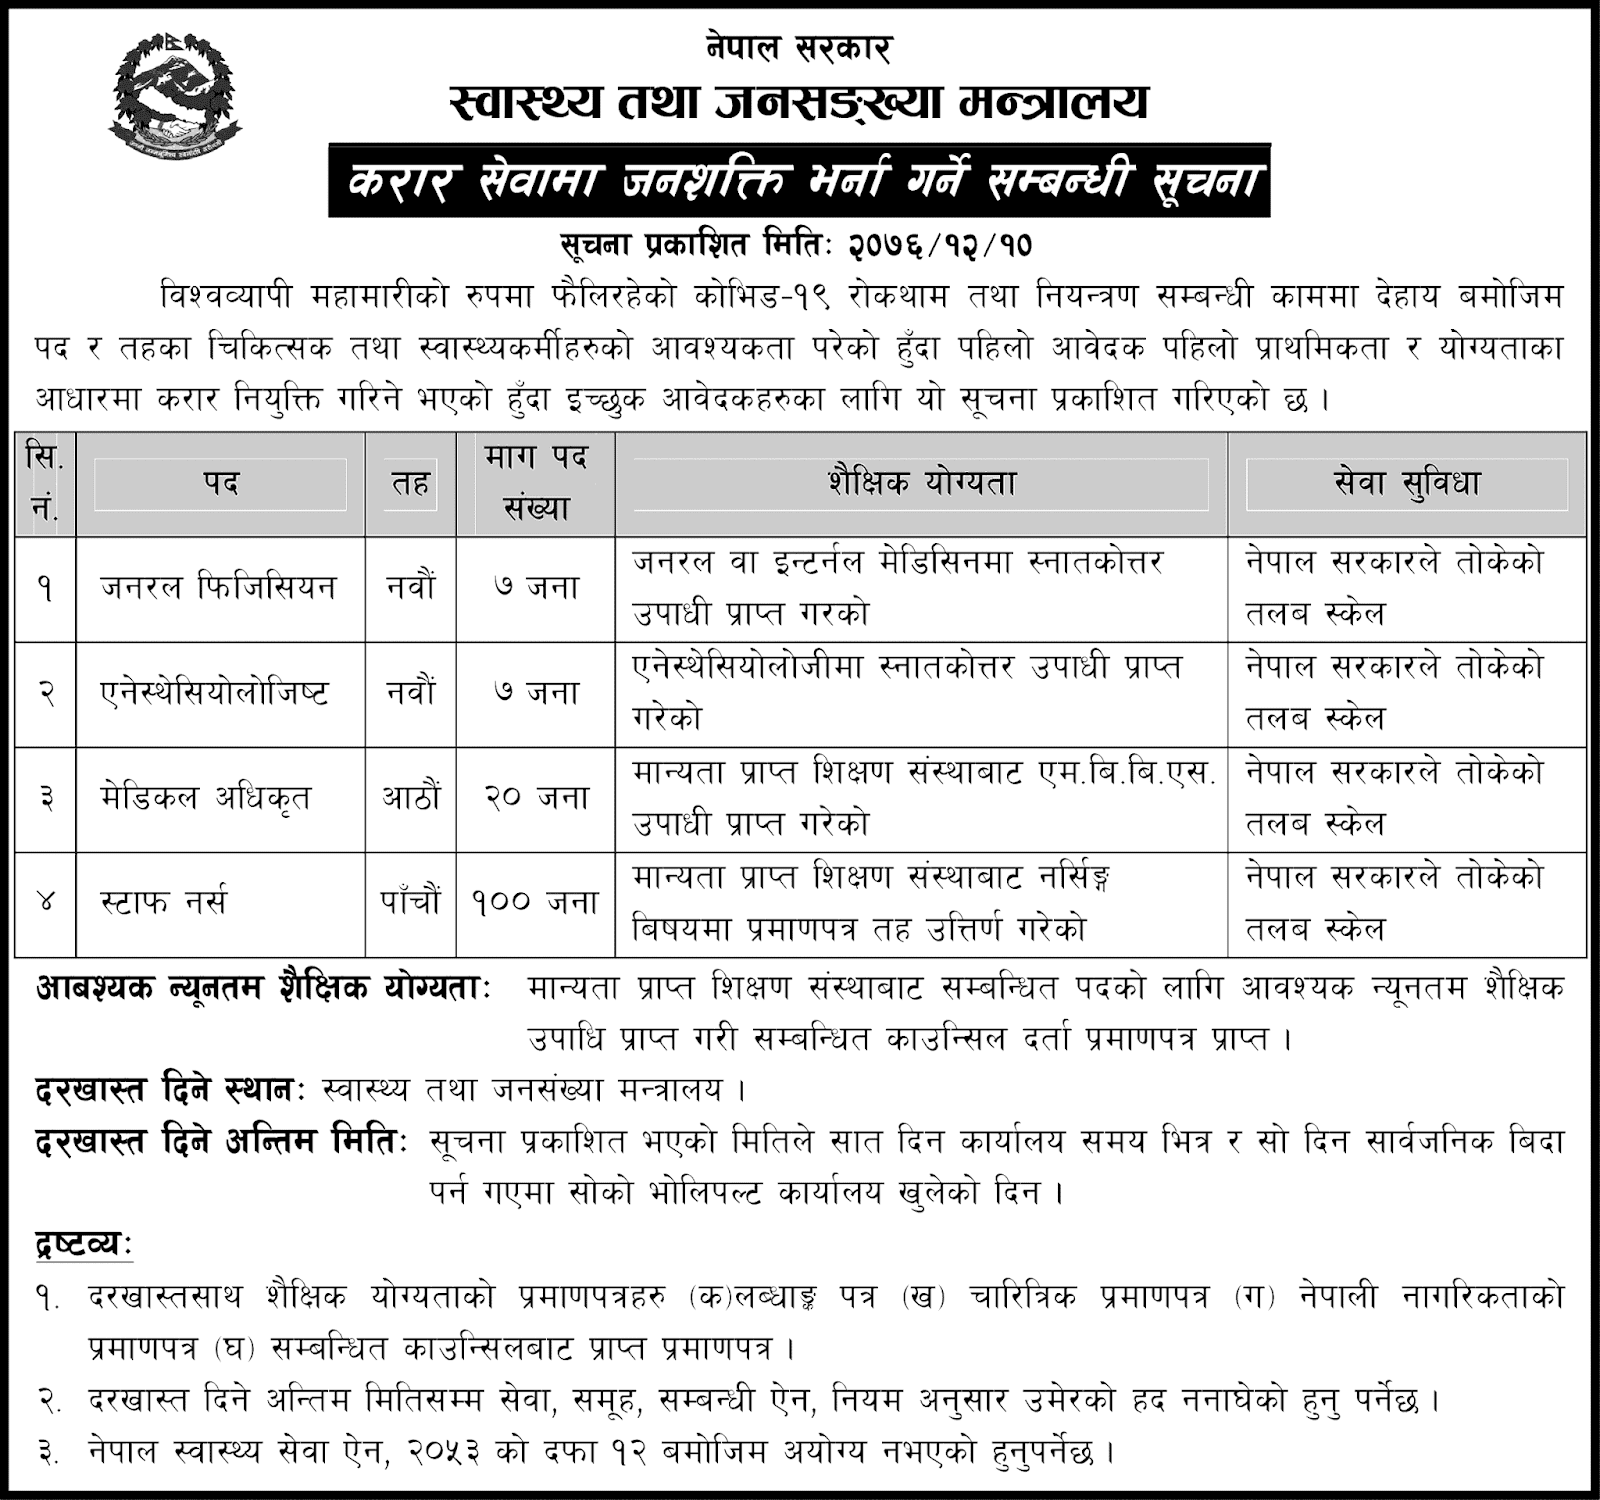 Government of Nepal Vacancies for Doctors and Health Workers